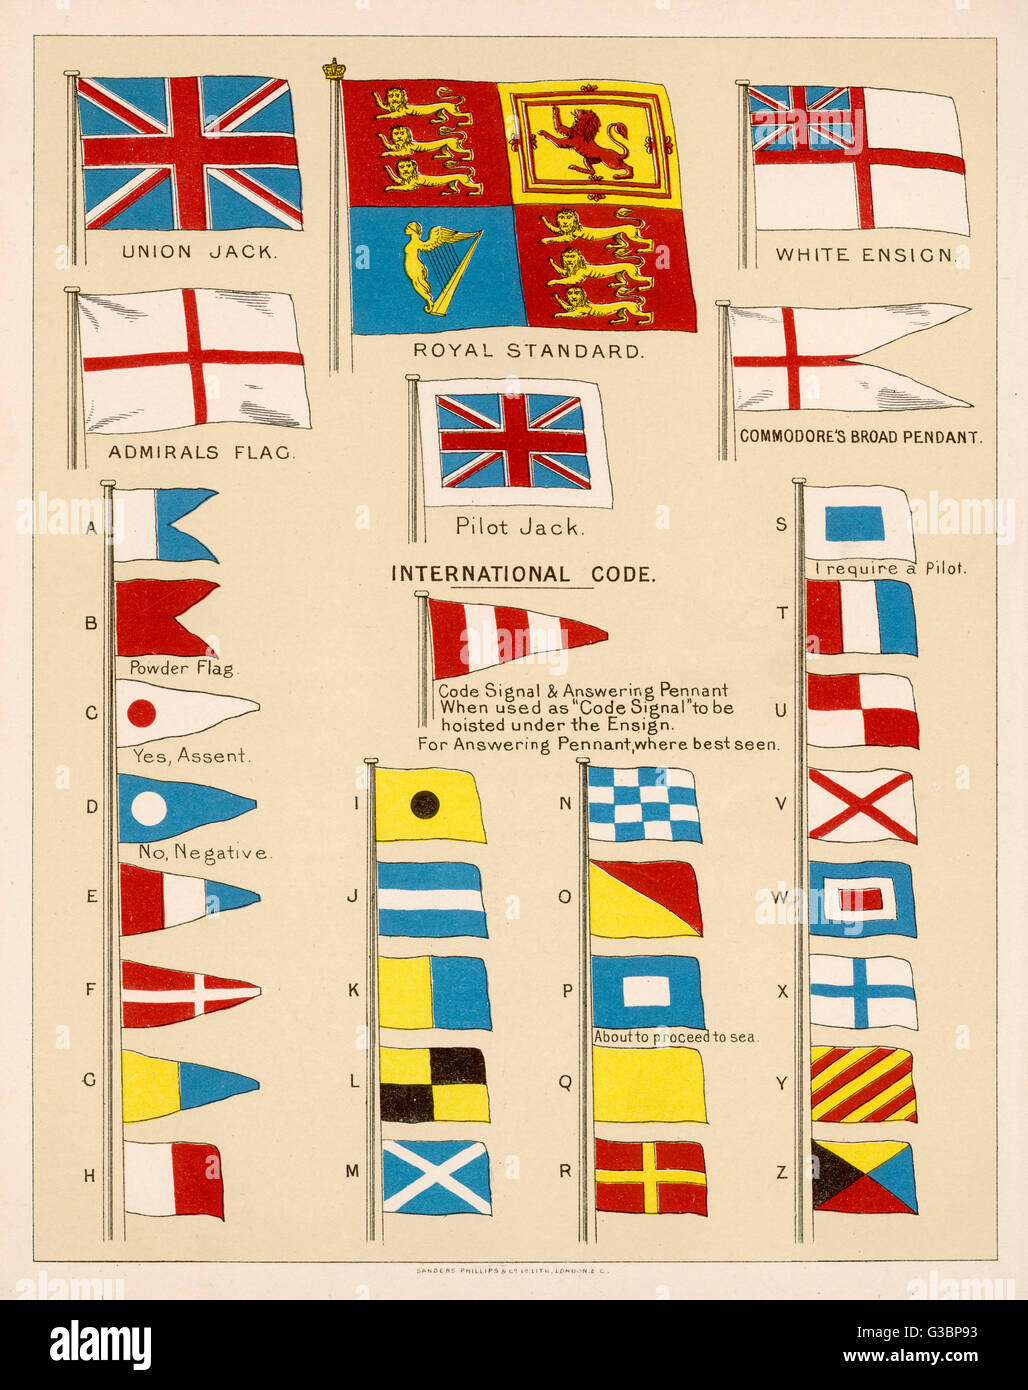 Some of the signal flags of  Royal Navy including the Royal  Standard, White Ensign, Union  Jack...       Date: Stock Photo